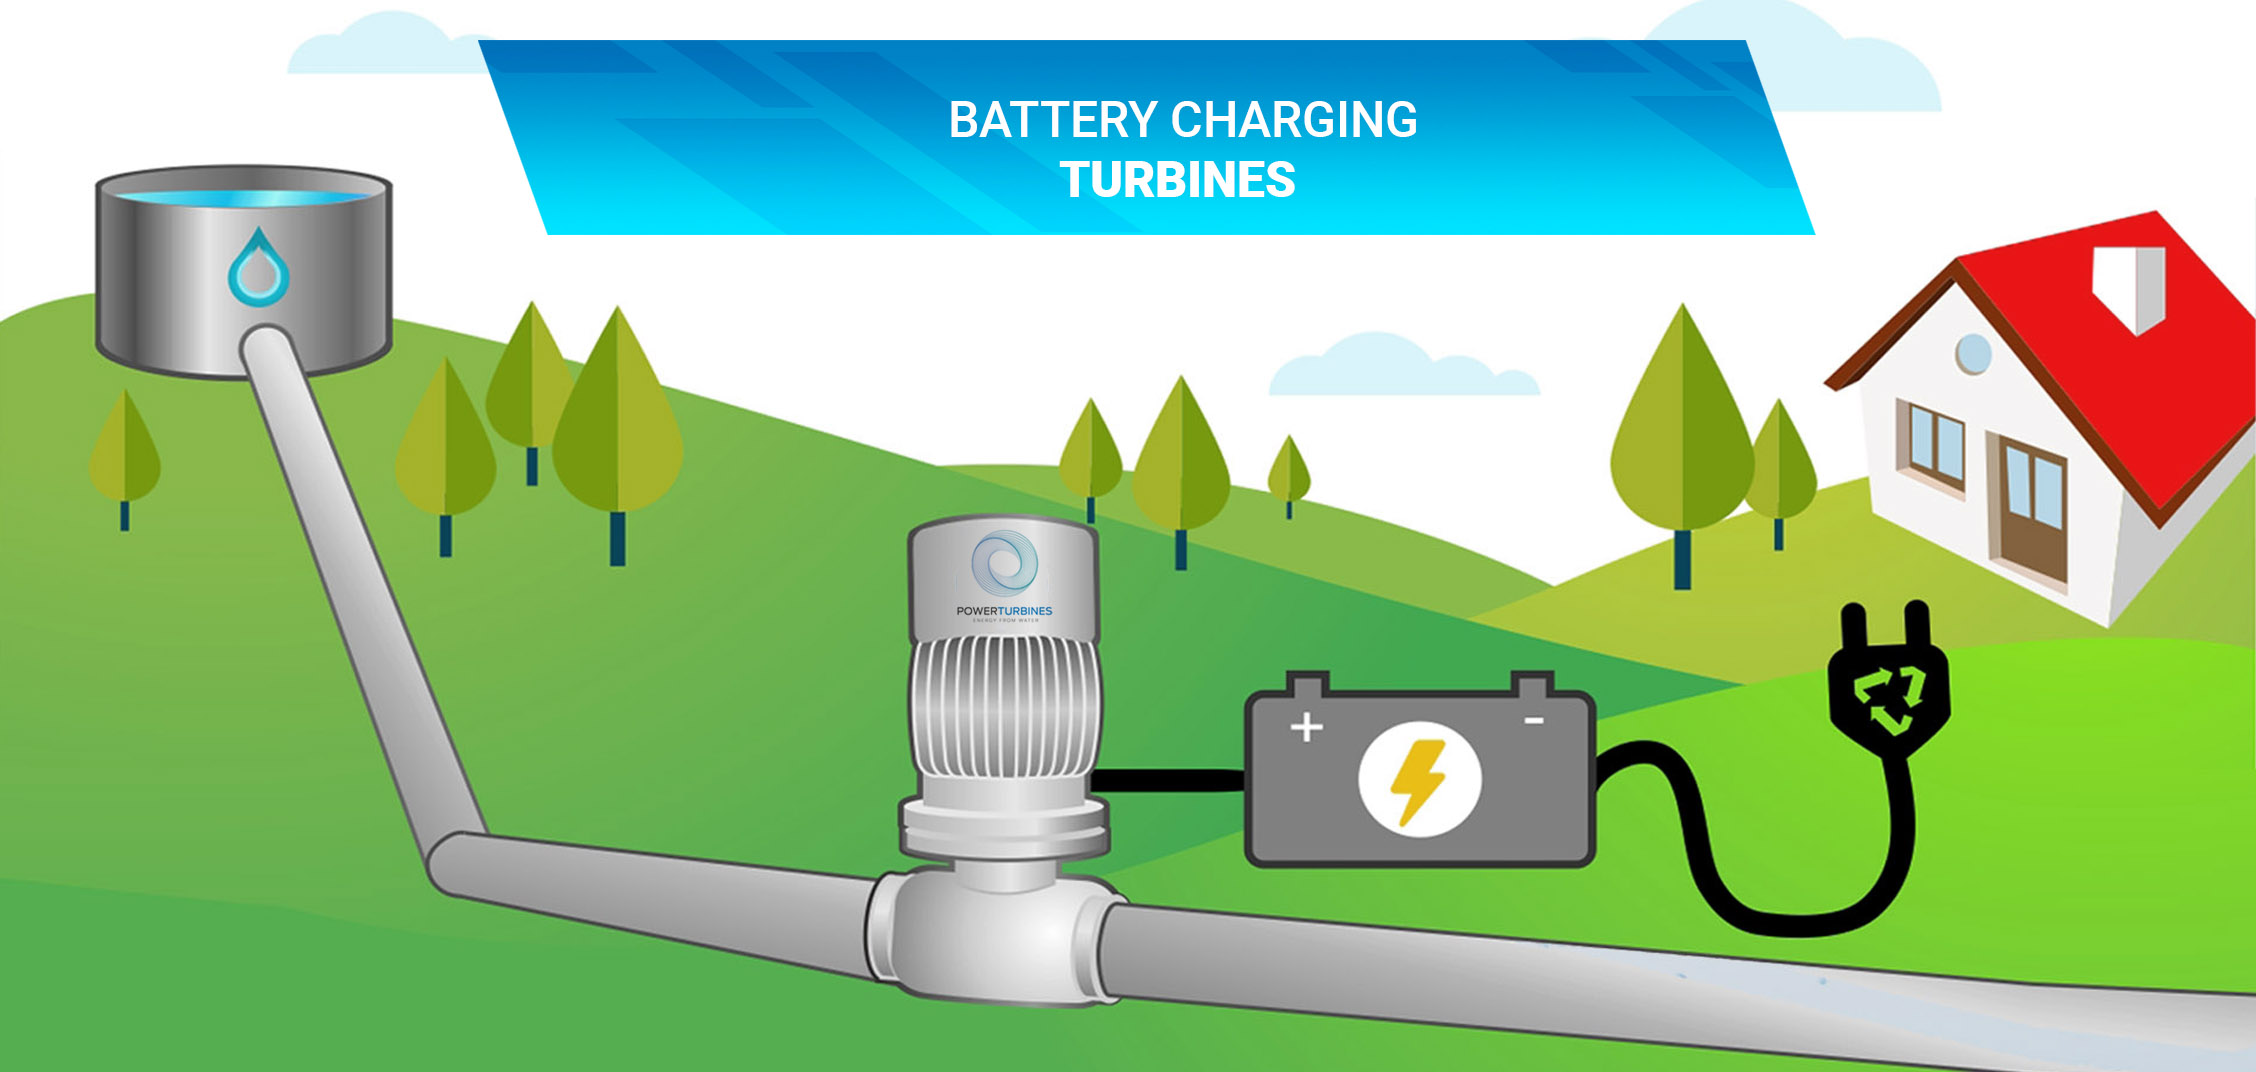 BAttery charging turbines